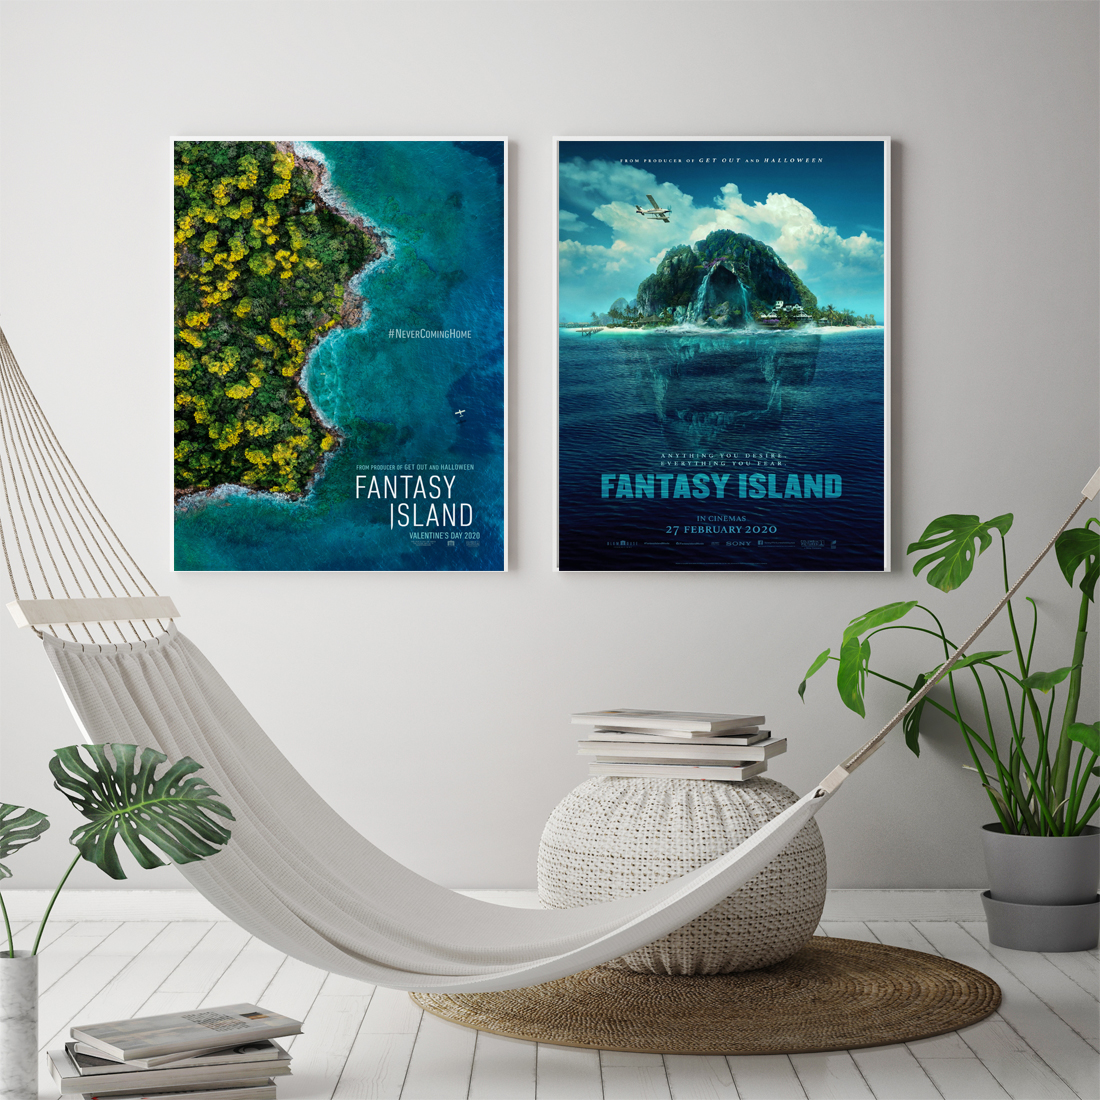 m011 new fantasy island movie silk poster canvas decoration print wall pictures custom 24x36 27x40inch home decor painting calligraphy aliexpress